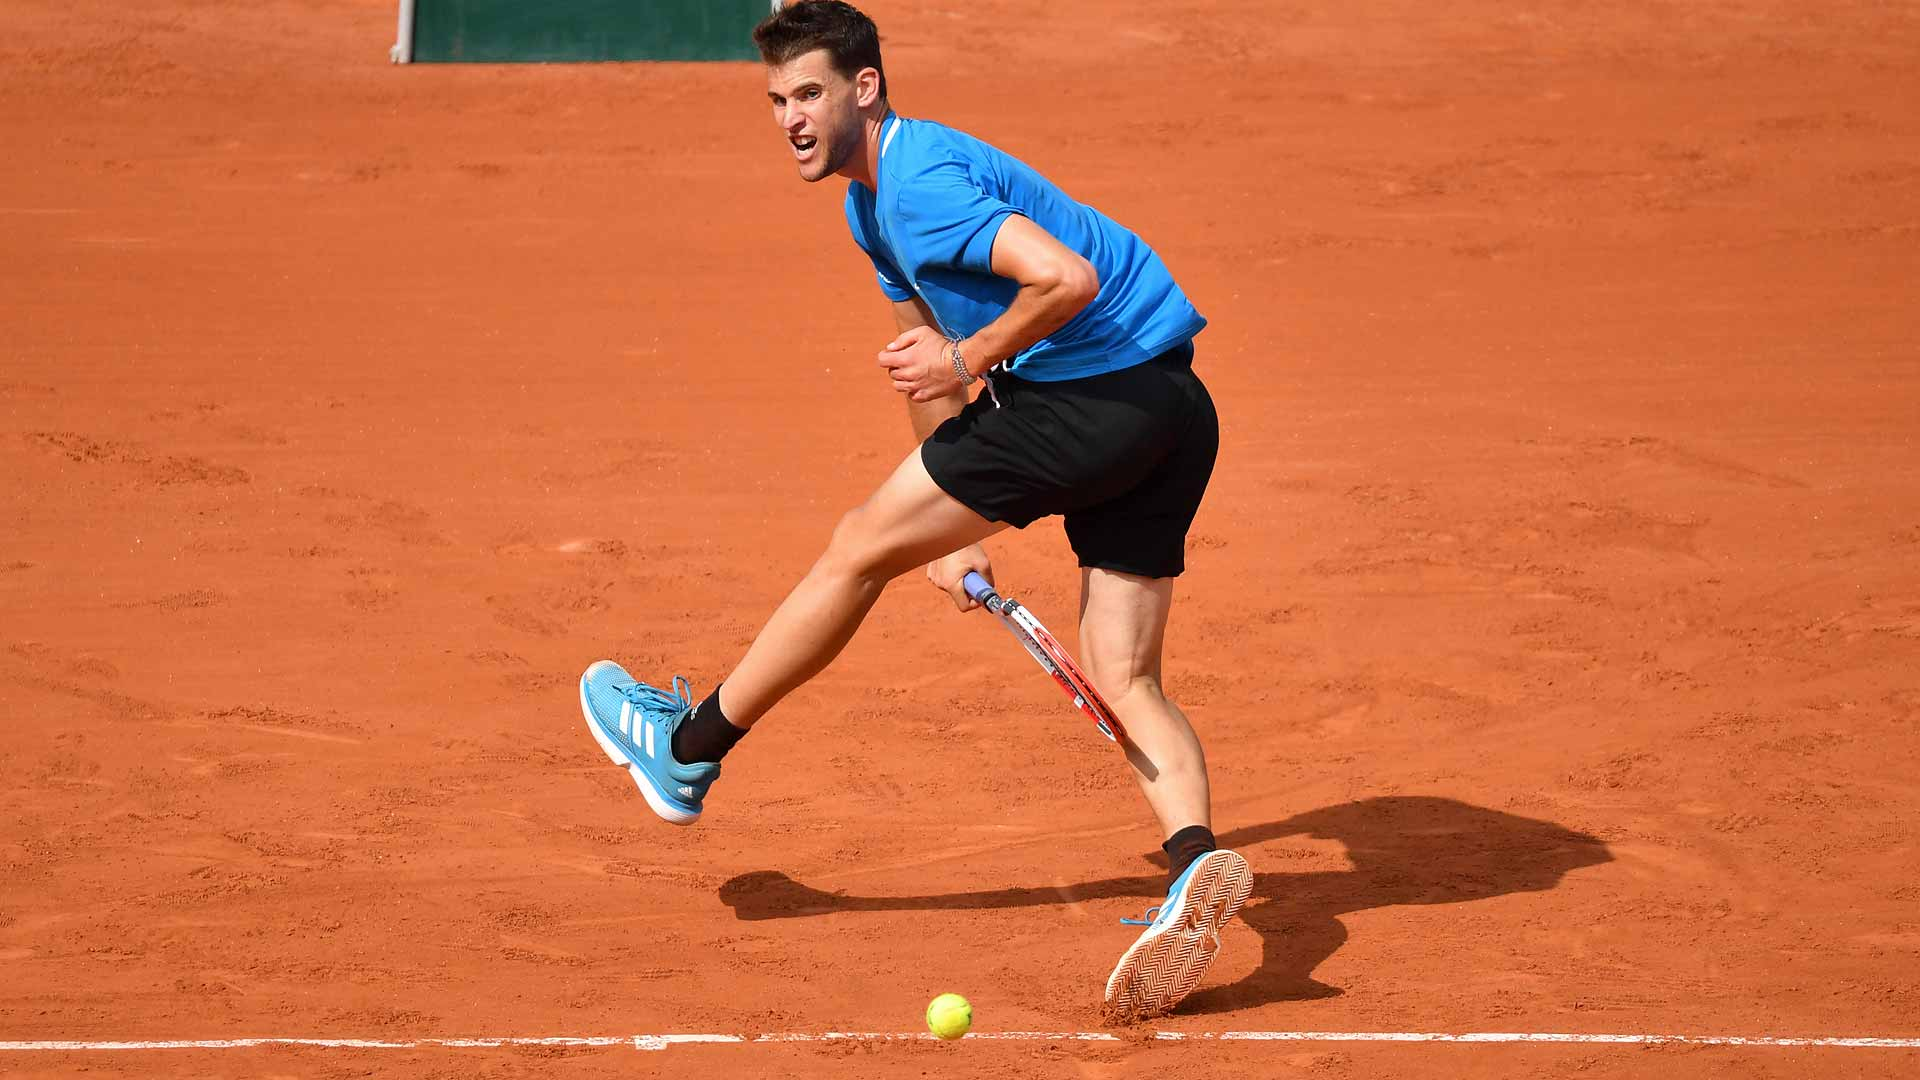 <a href='https://www.atptour.com/en/players/dominic-thiem/tb69/overview'>Dominic Thiem</a> hits a tweener during his fourth-round win at <a href='https://www.atptour.com/en/tournaments/roland-garros/520/overview'>Roland Garros</a>